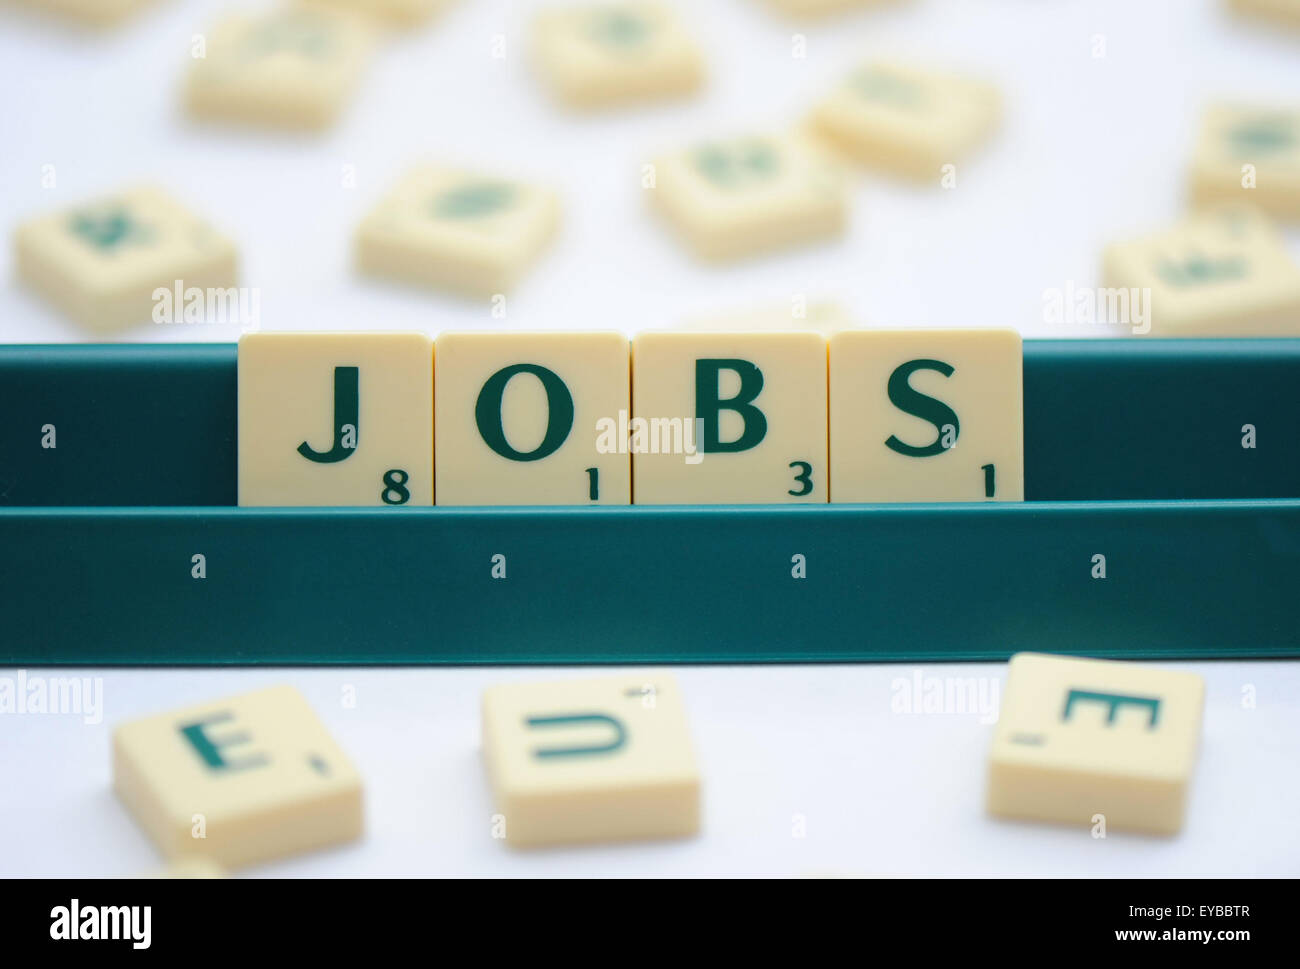 Scrabble keys spelling out the word 'jobs'. - Stock Image